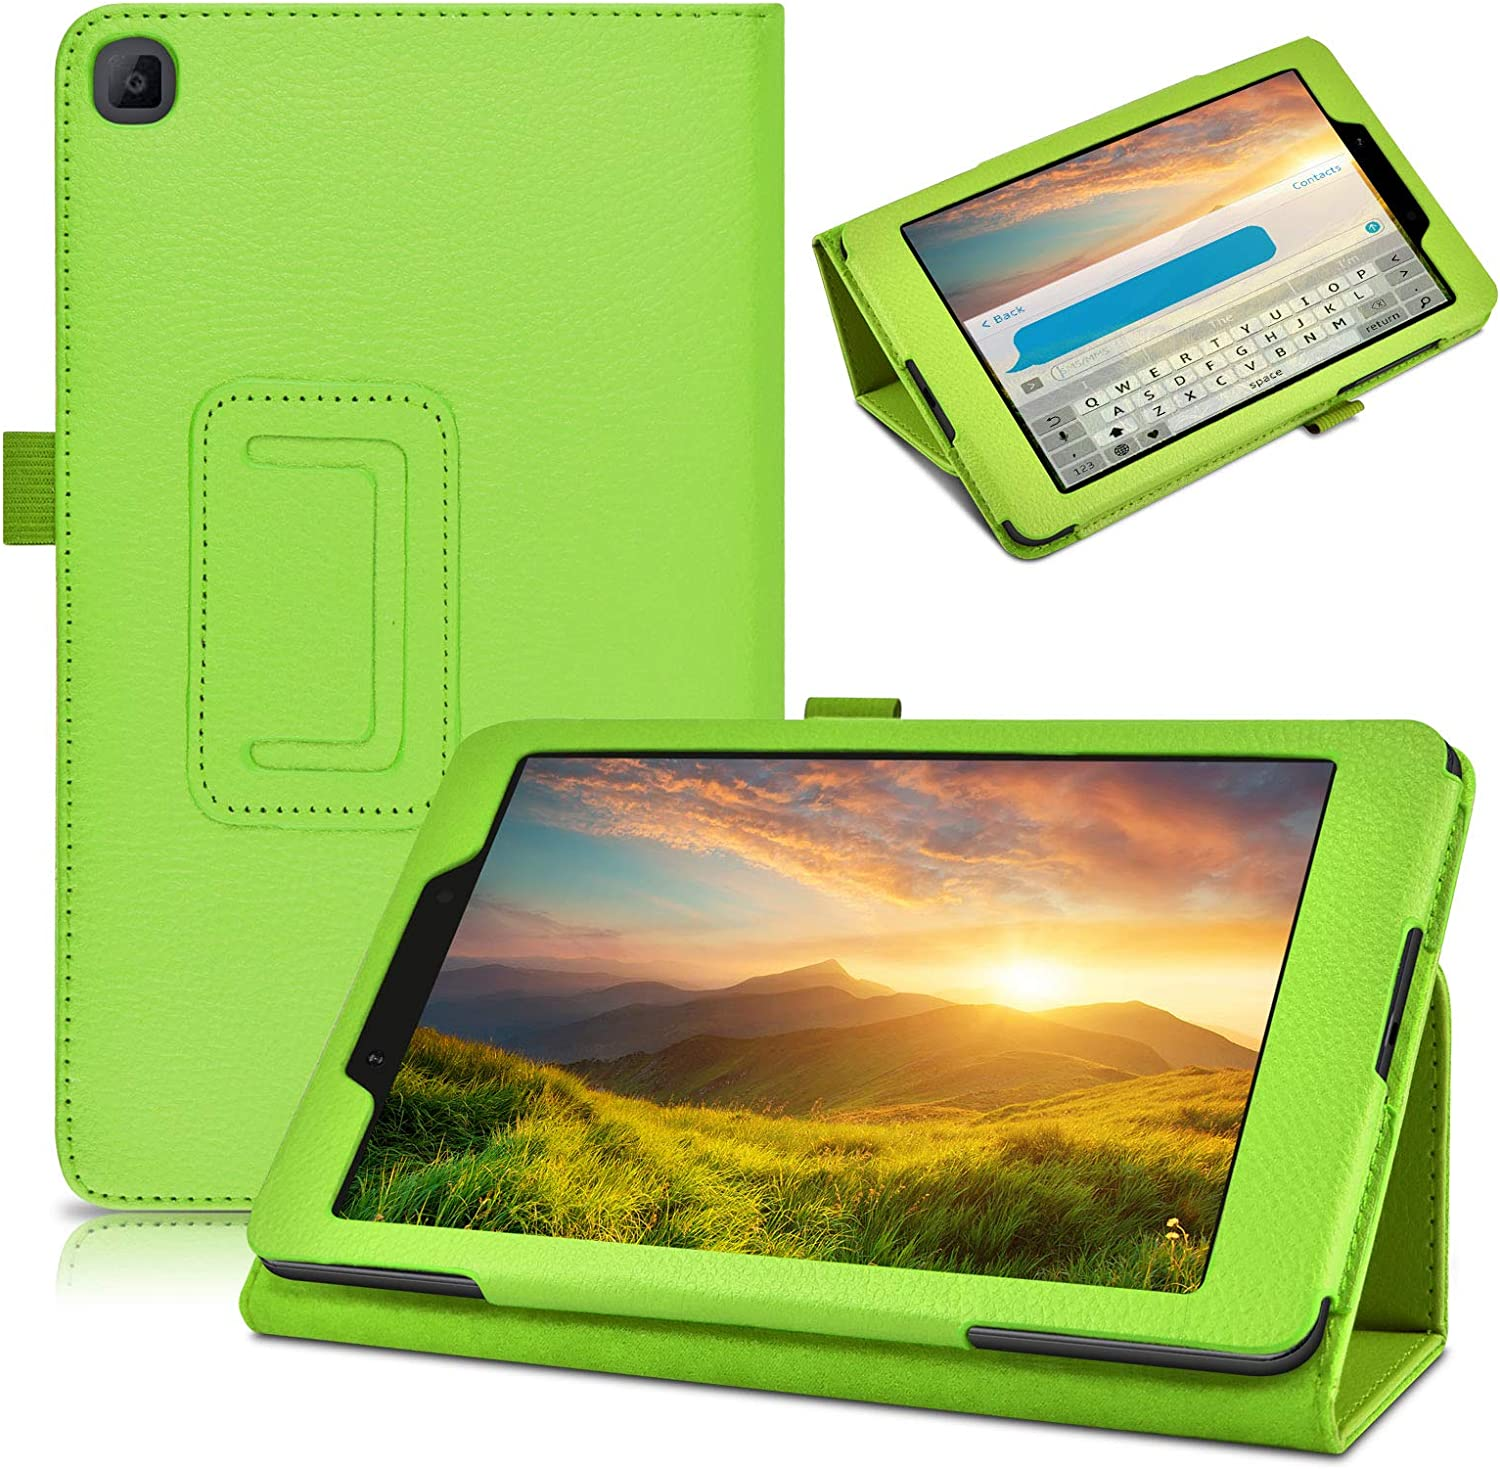 DETUOSI Case for Samsung Elegant Galaxy Tab A Inch Max 50% OFF Without 2019 Pe 8.0 S